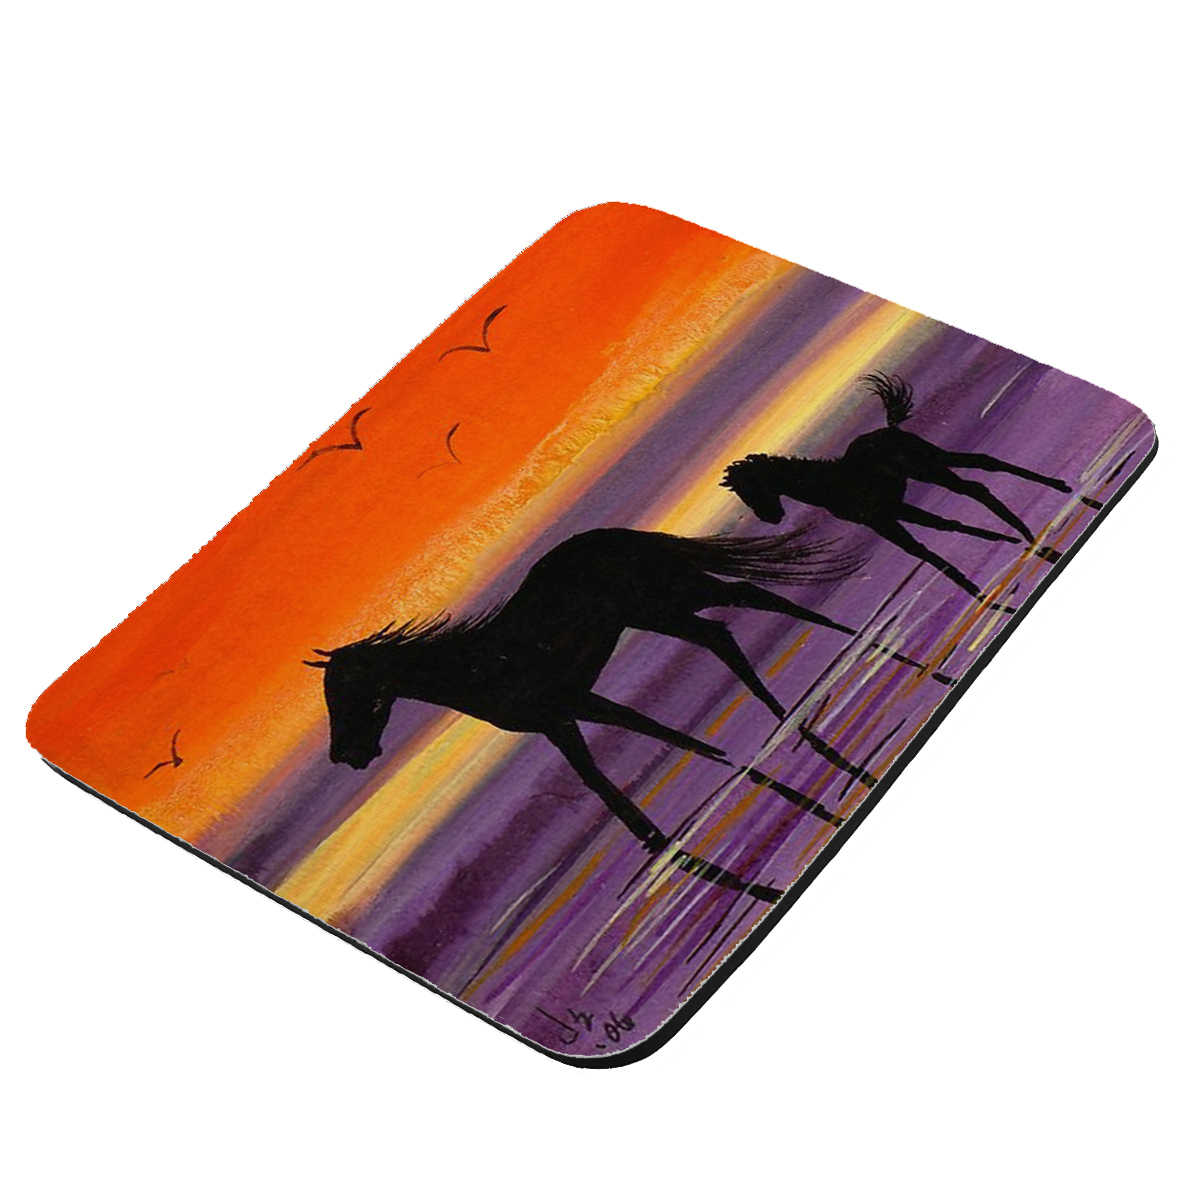 Beach Ponies at Twilight Horse Art by Denise Every - KuzmarK Mousepad / Hot Pad / Trivet